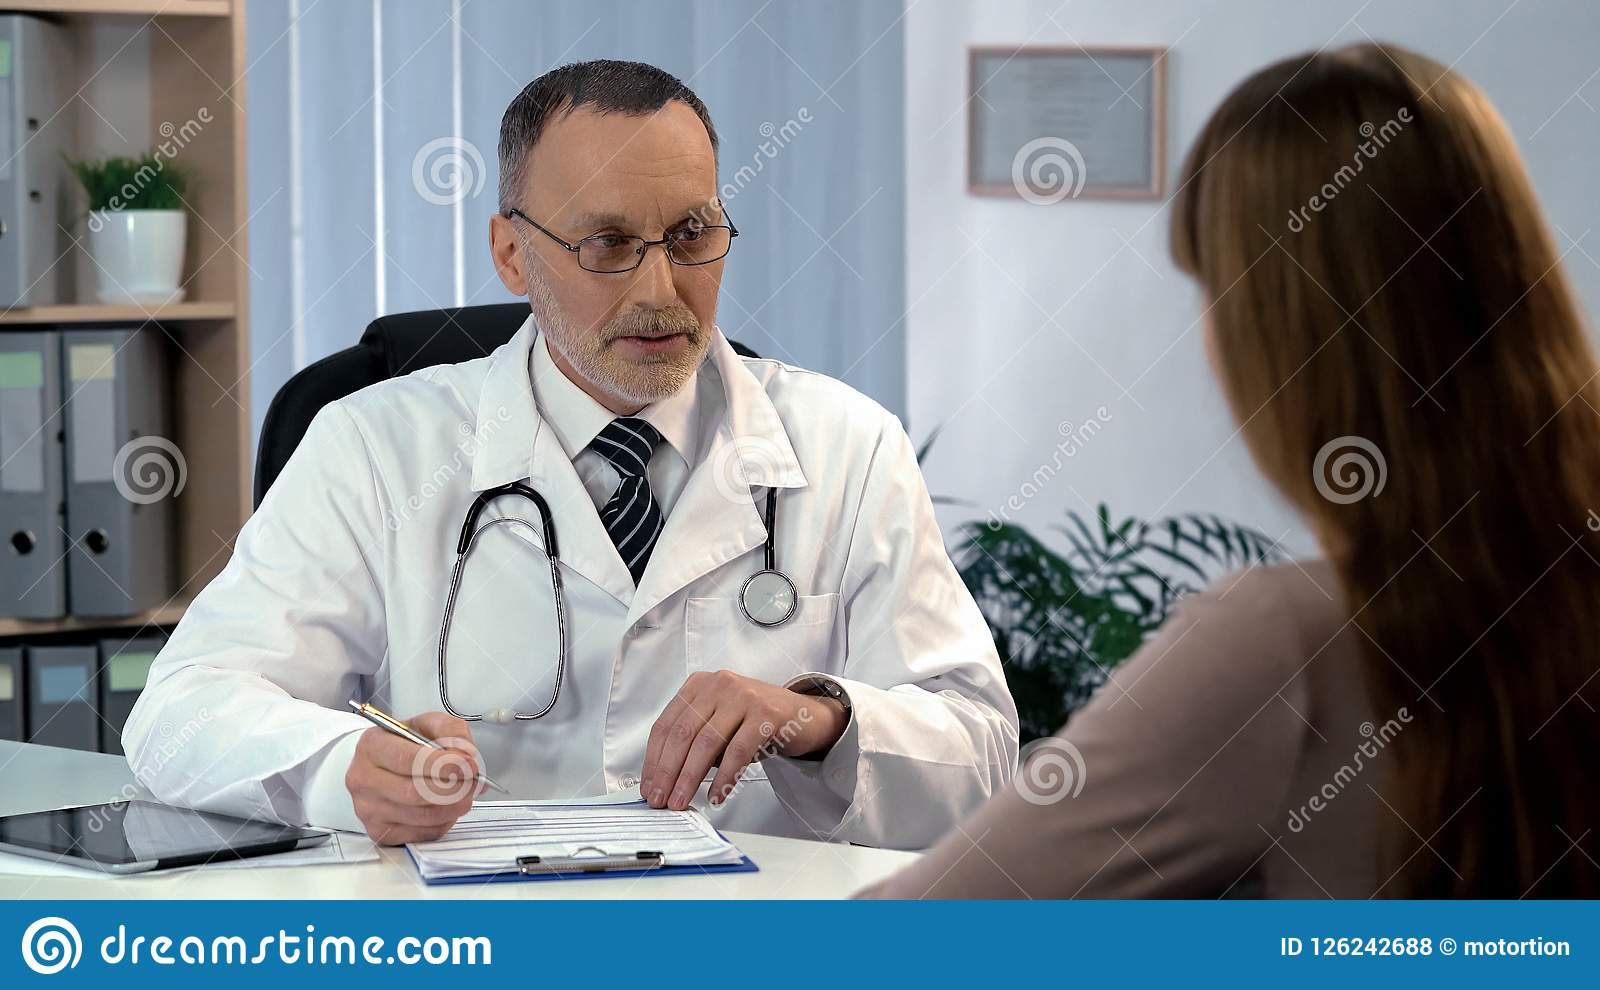 Family doctor listening to patient, filling out medical insurance, health care